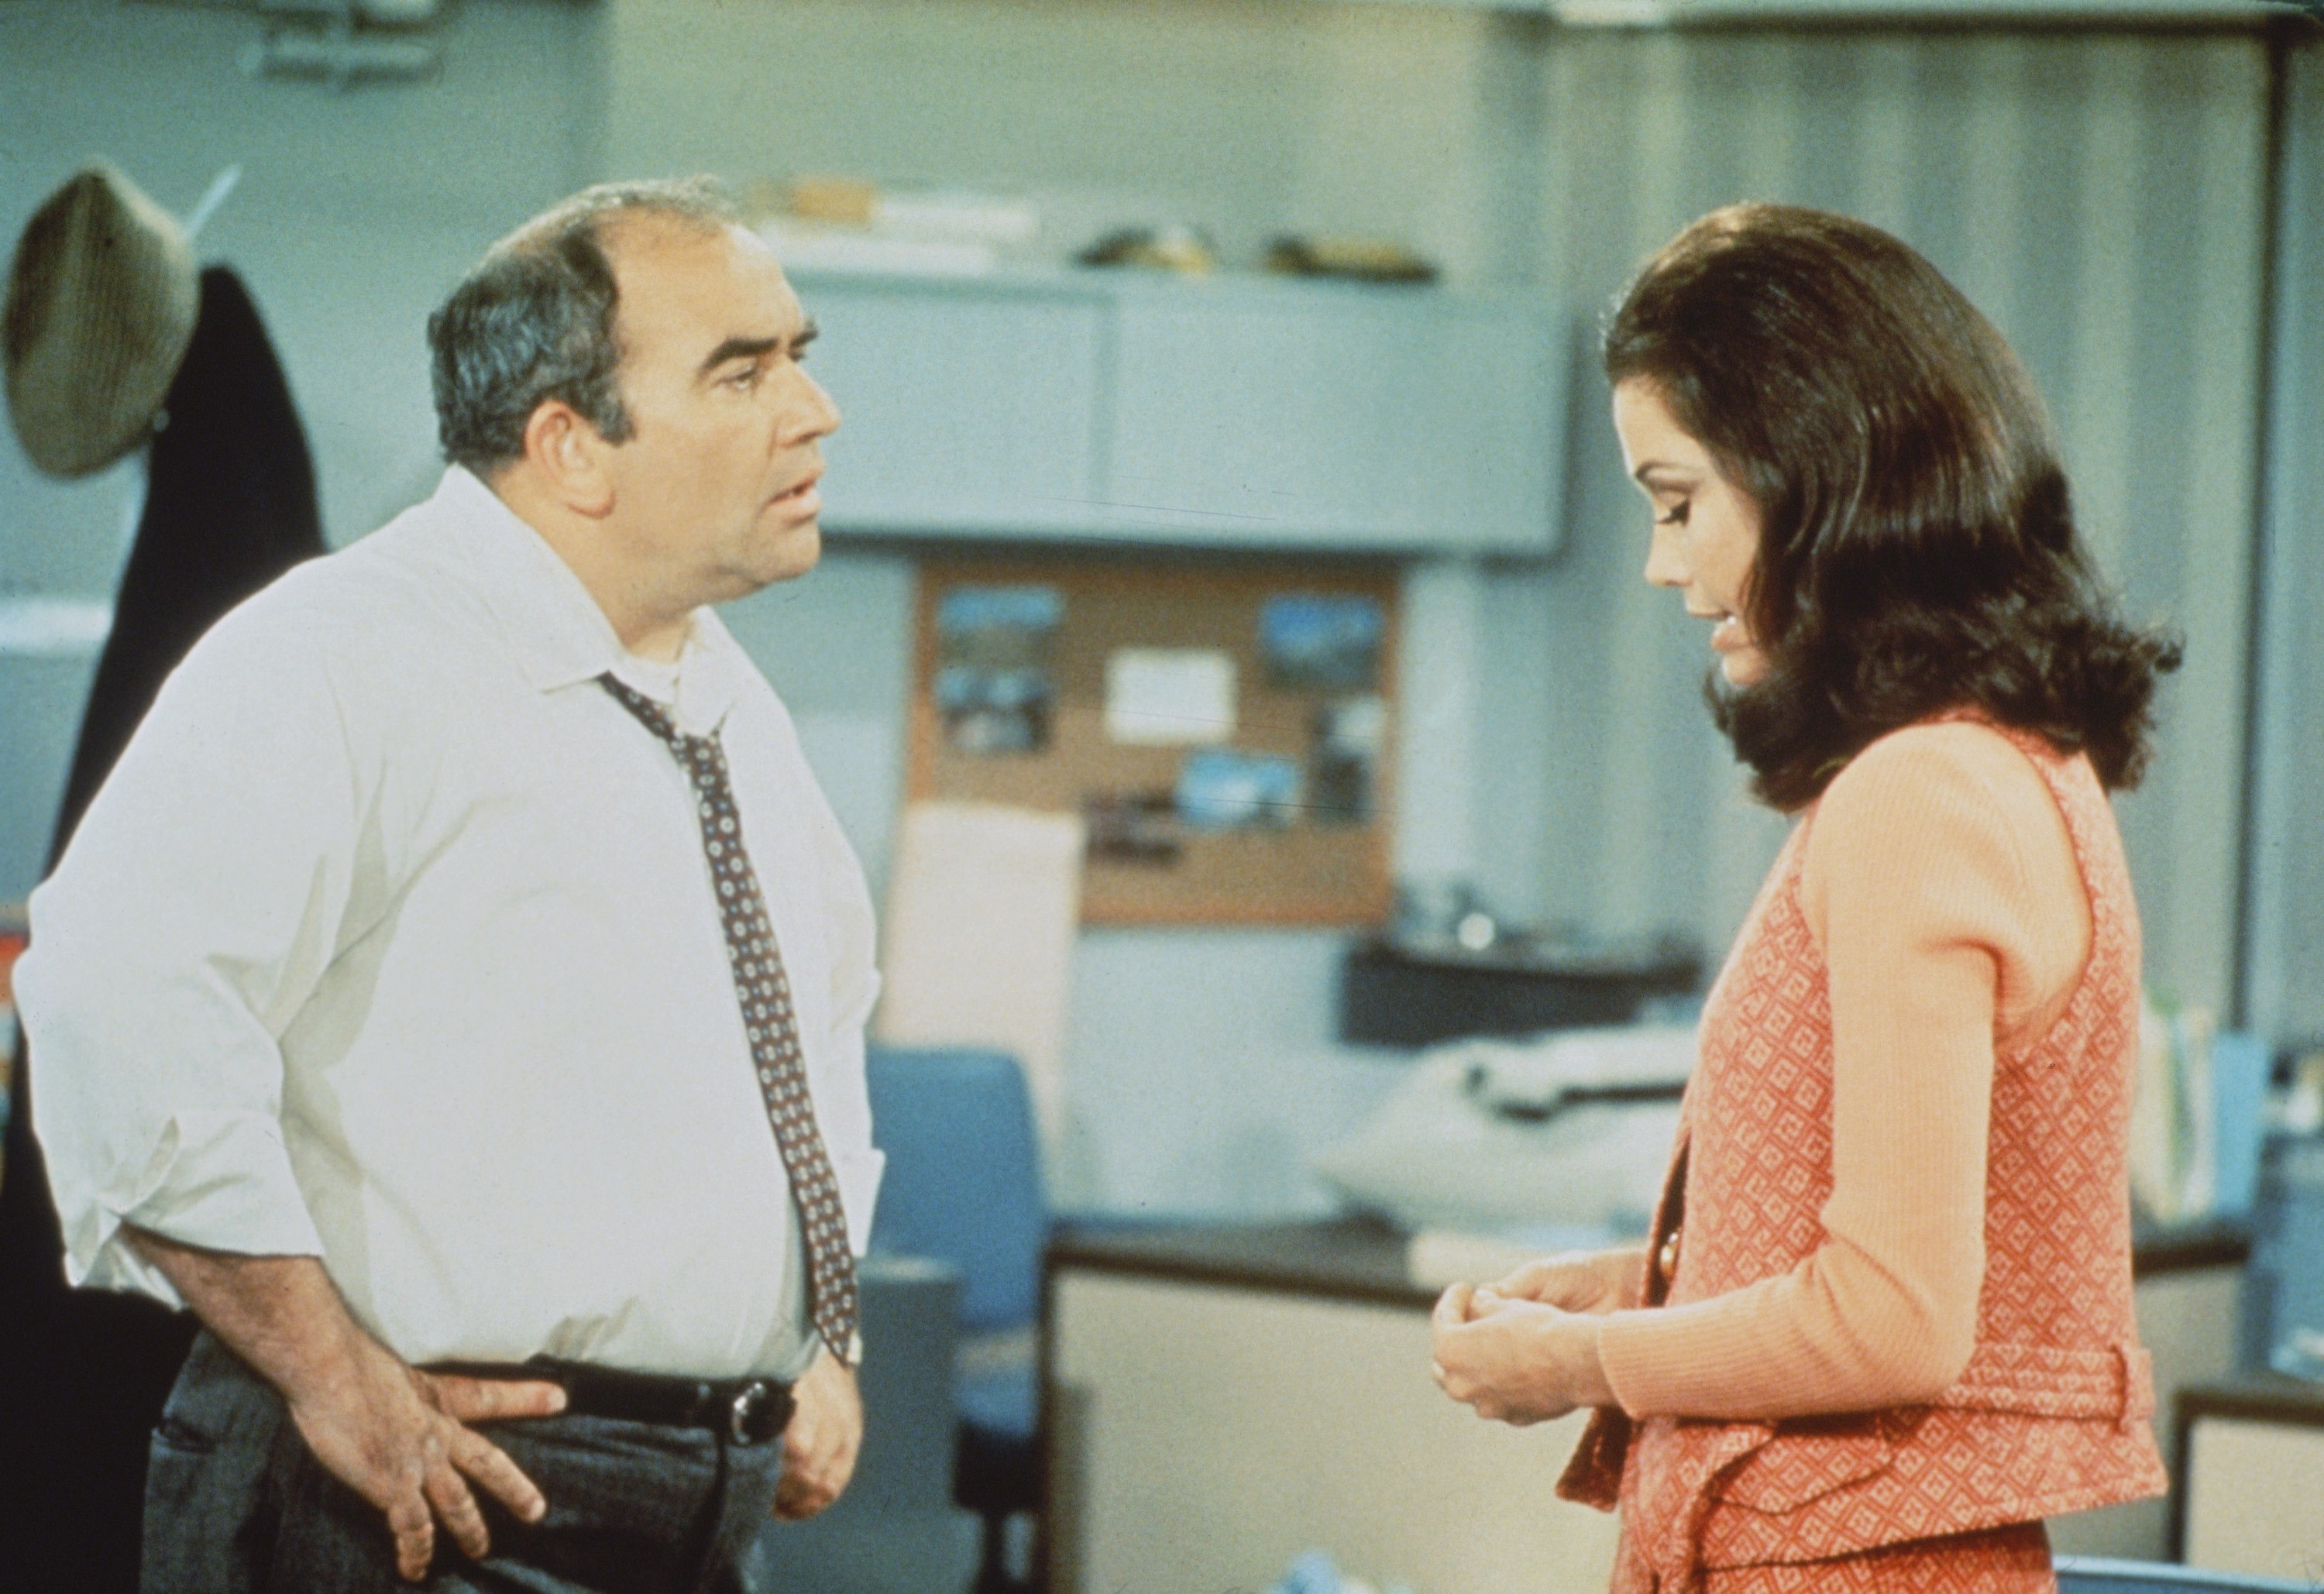 Ed with his hands on his hips talks to Mary, who's looking down, in the office